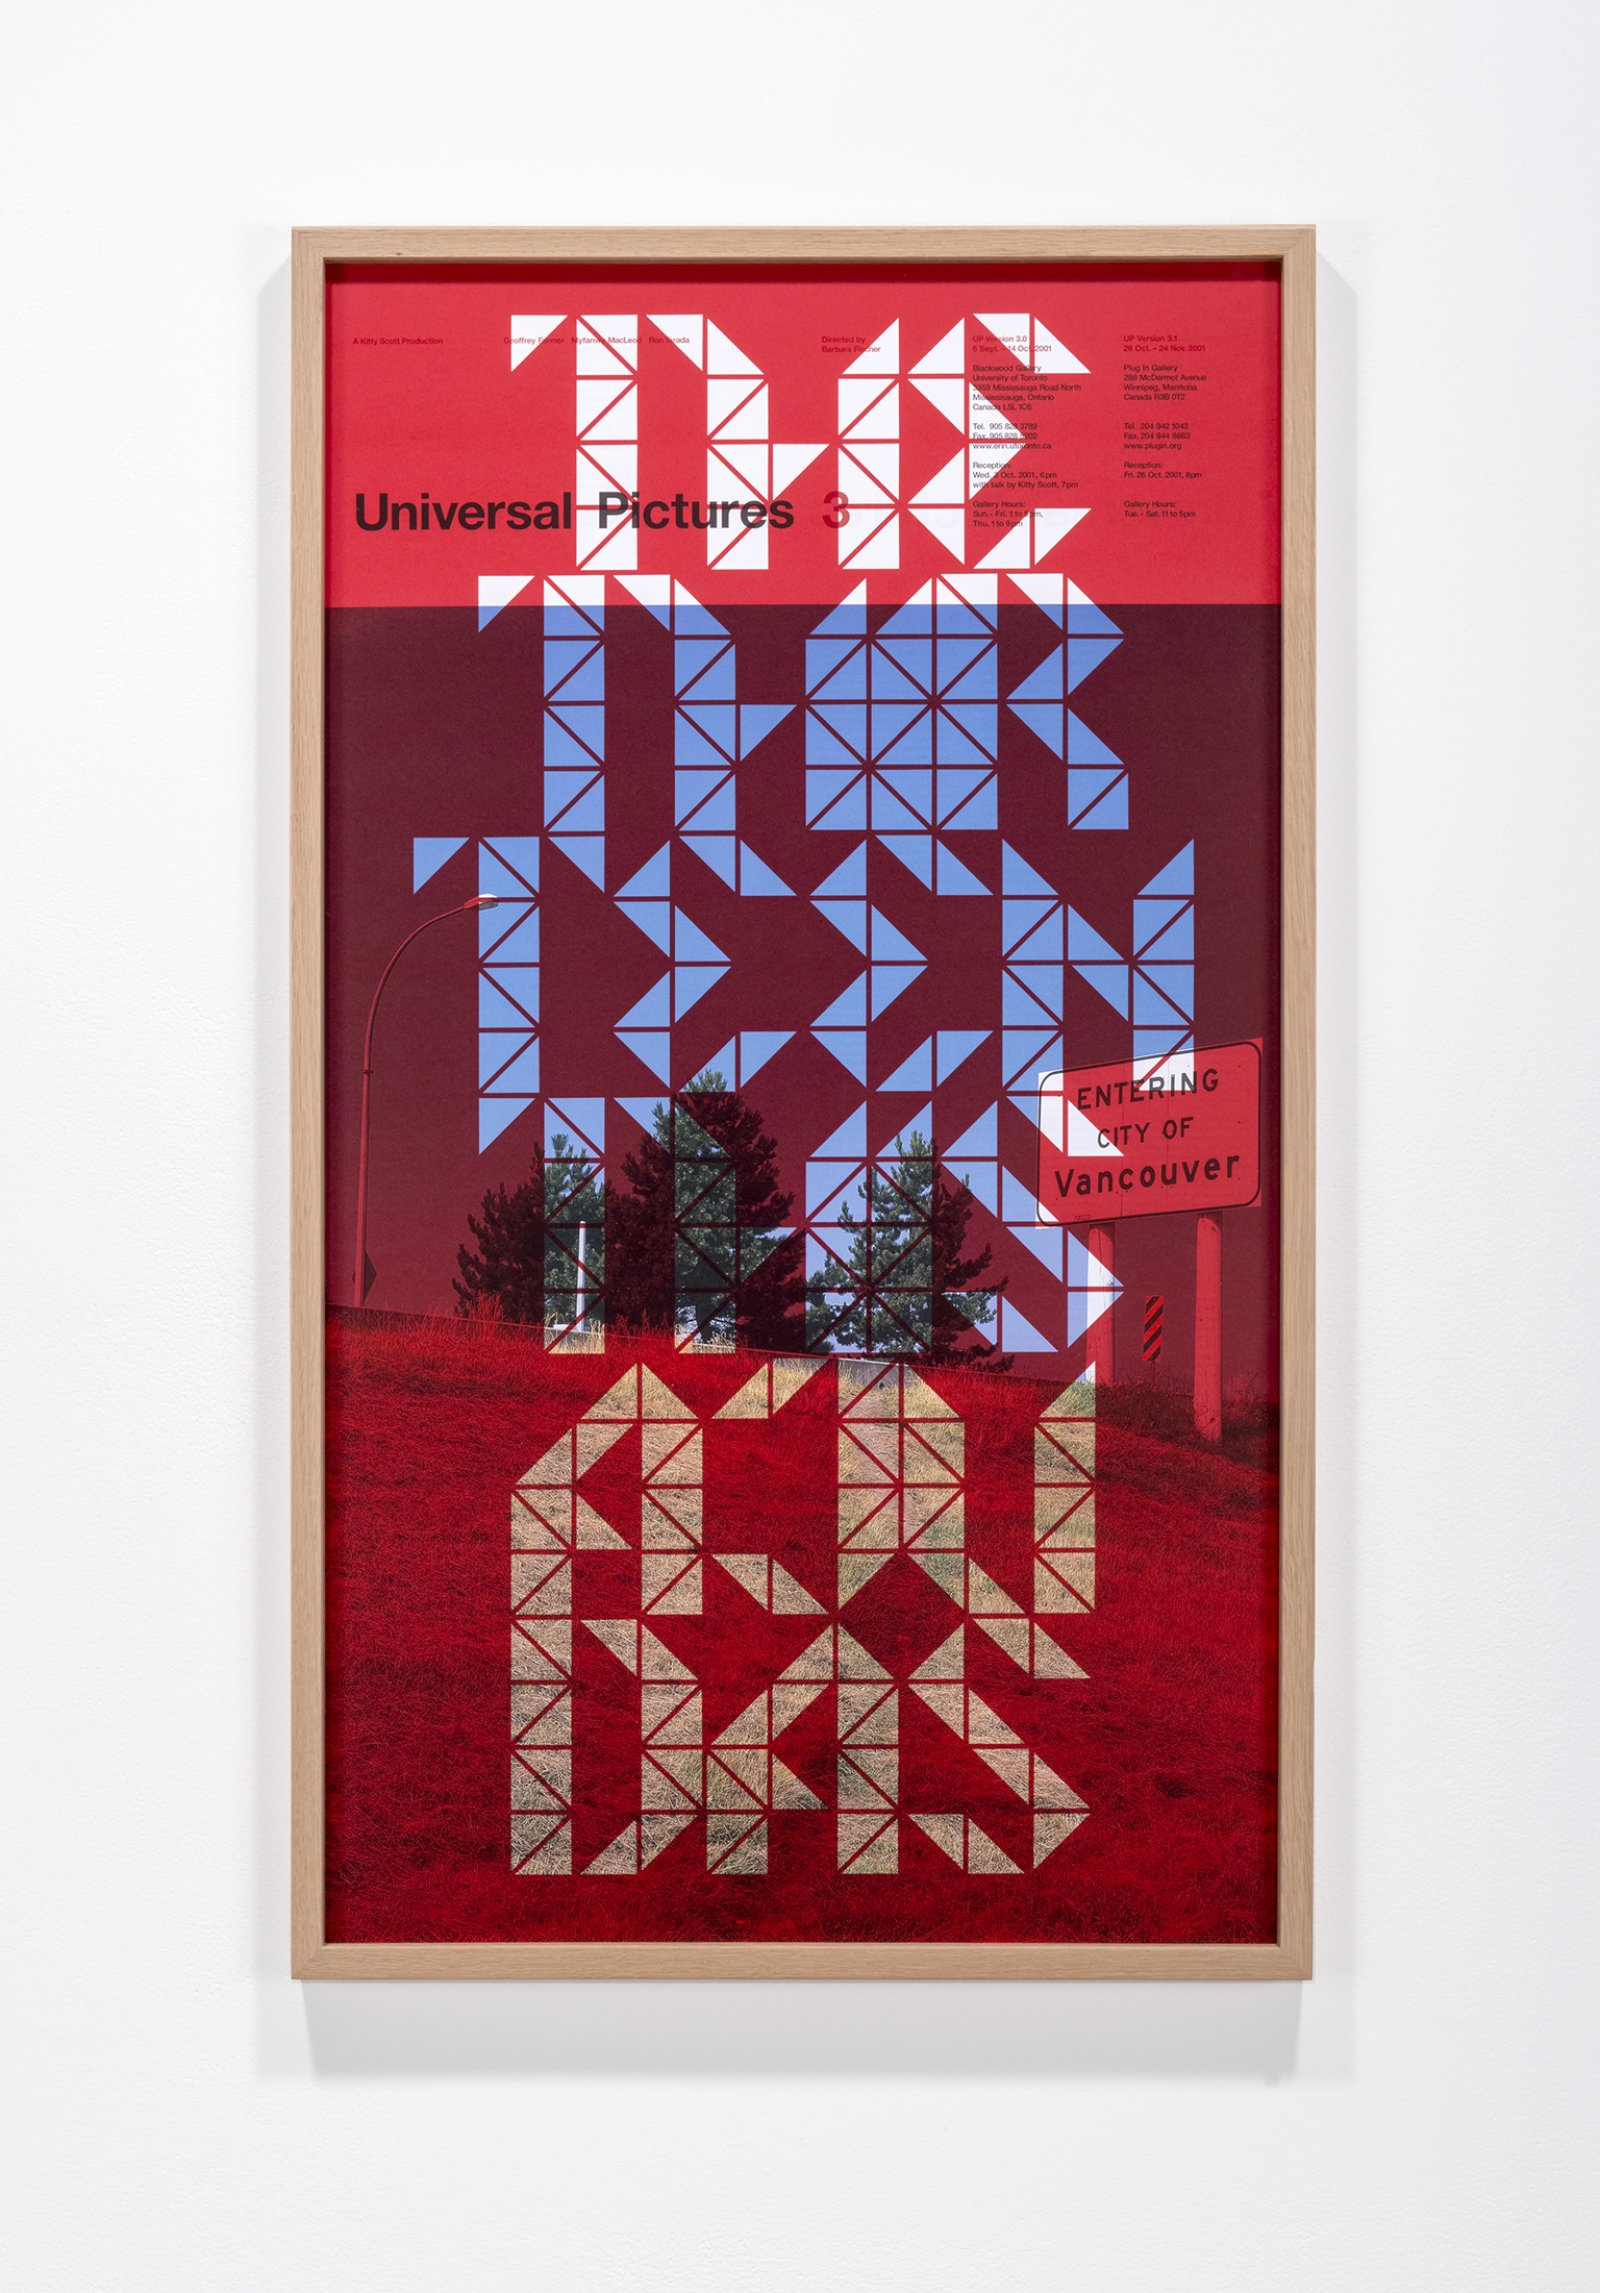 Ron Terada, THE THIRTEENTH IS A JUDAS, 2015, inkjet print on offset printed poster (2001), 35 x 20 in. (89 x 51 cm)